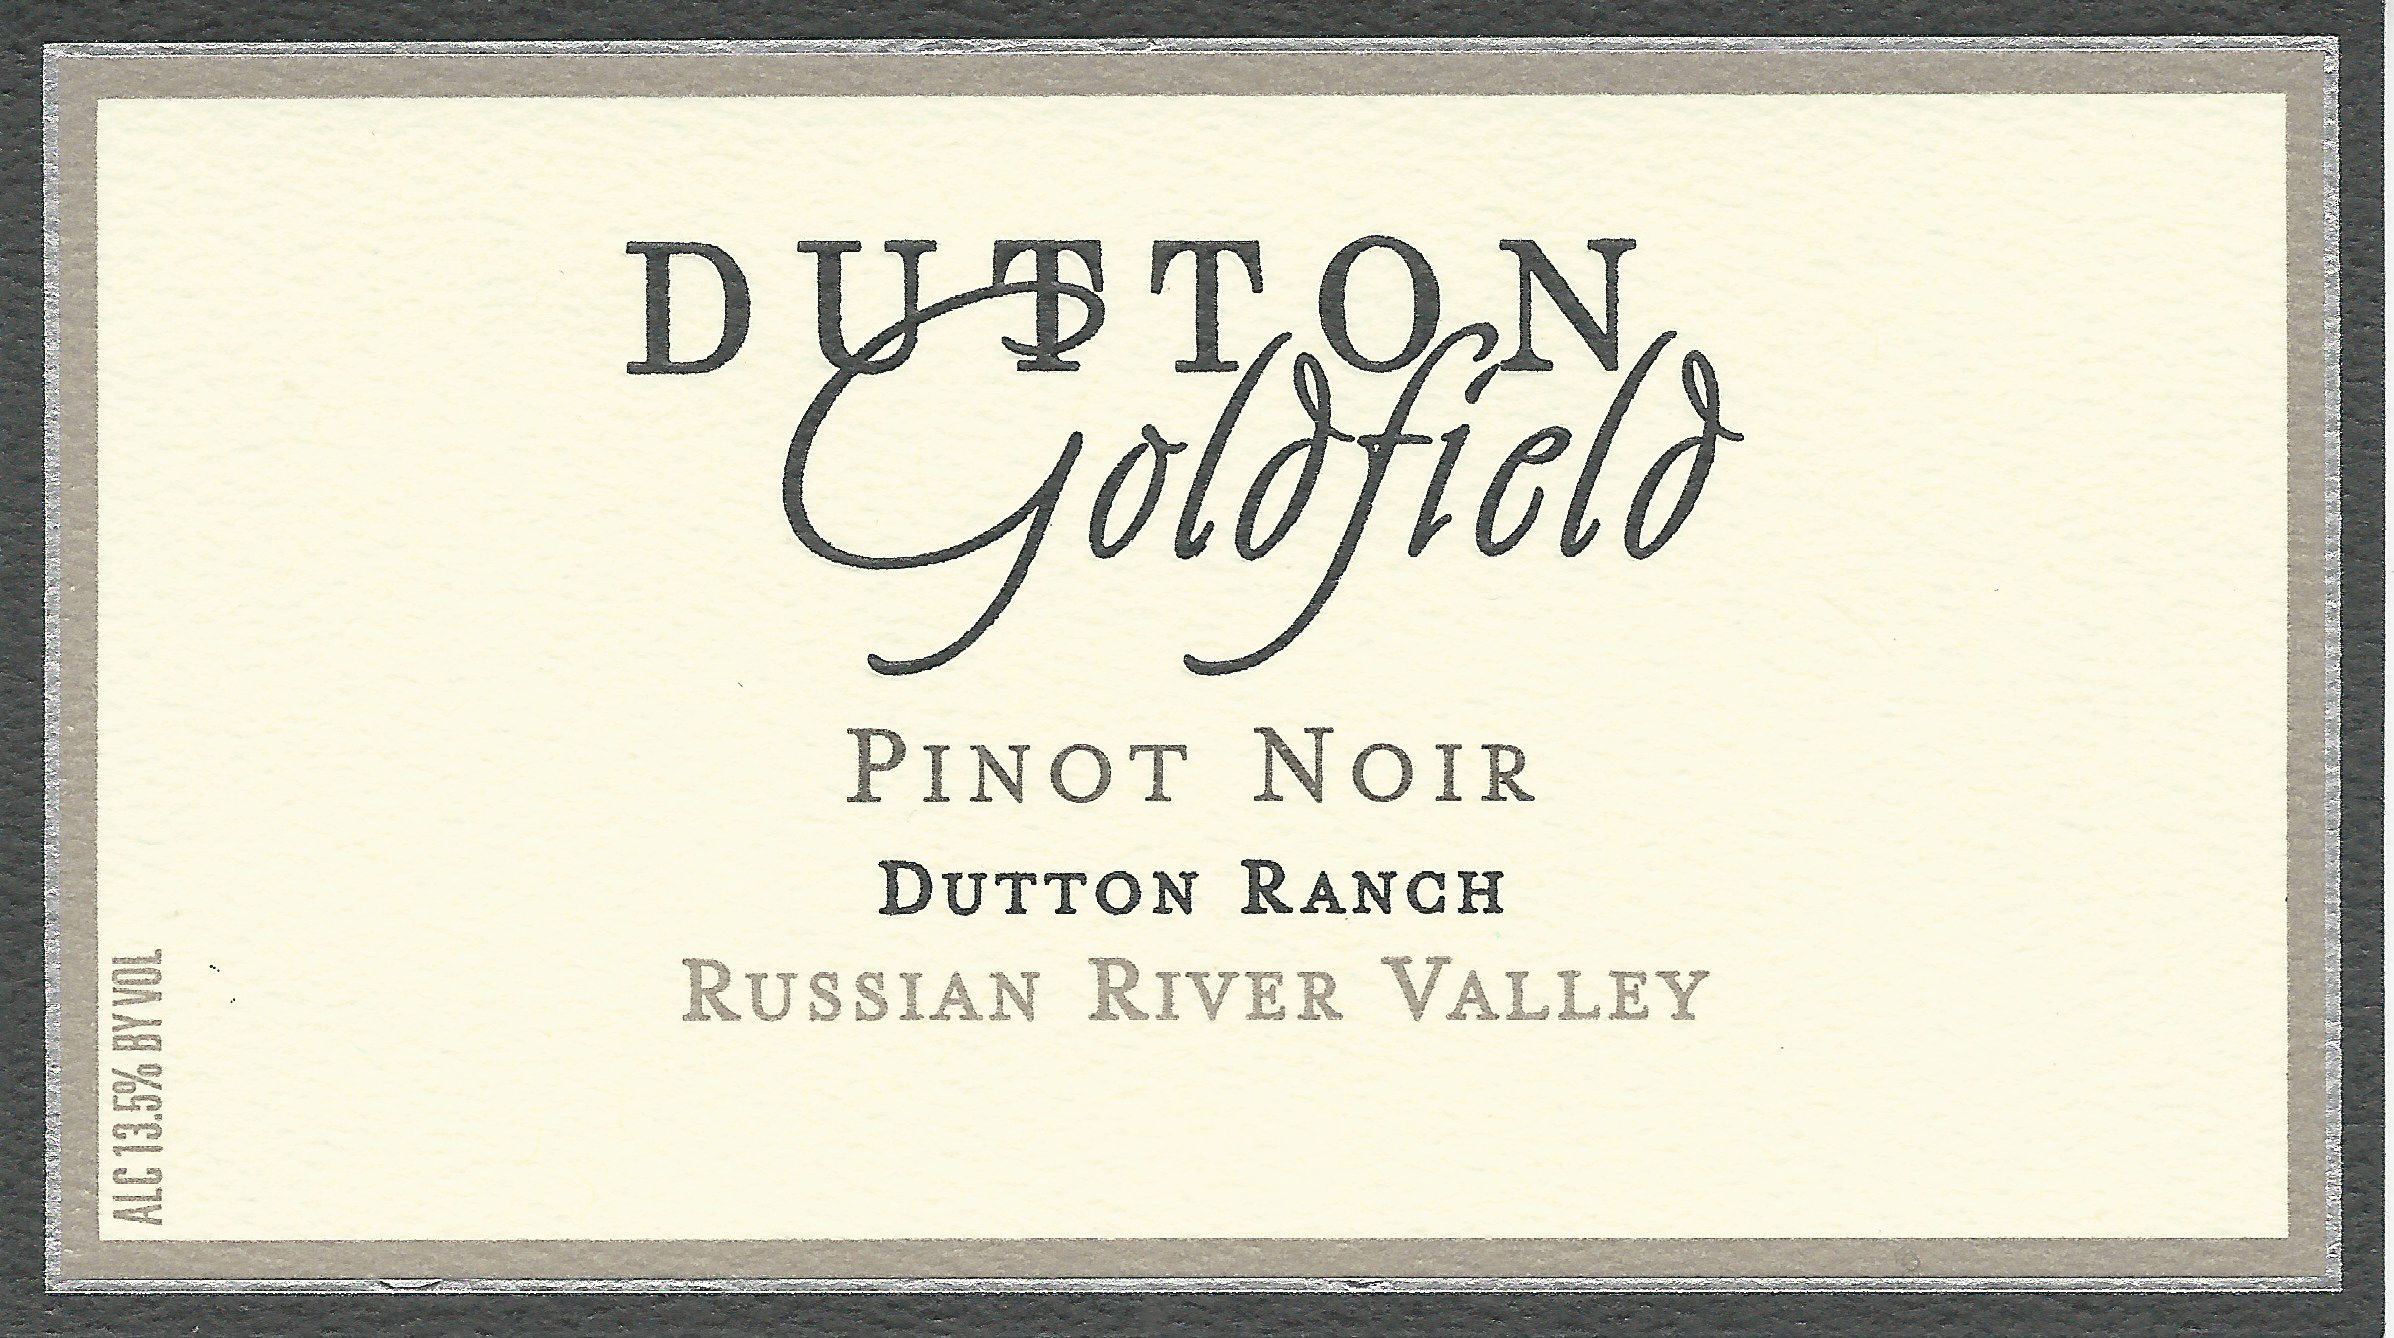 Dutton-Goldfield Dutton Ranch Pinot Noir 2018  Front Label